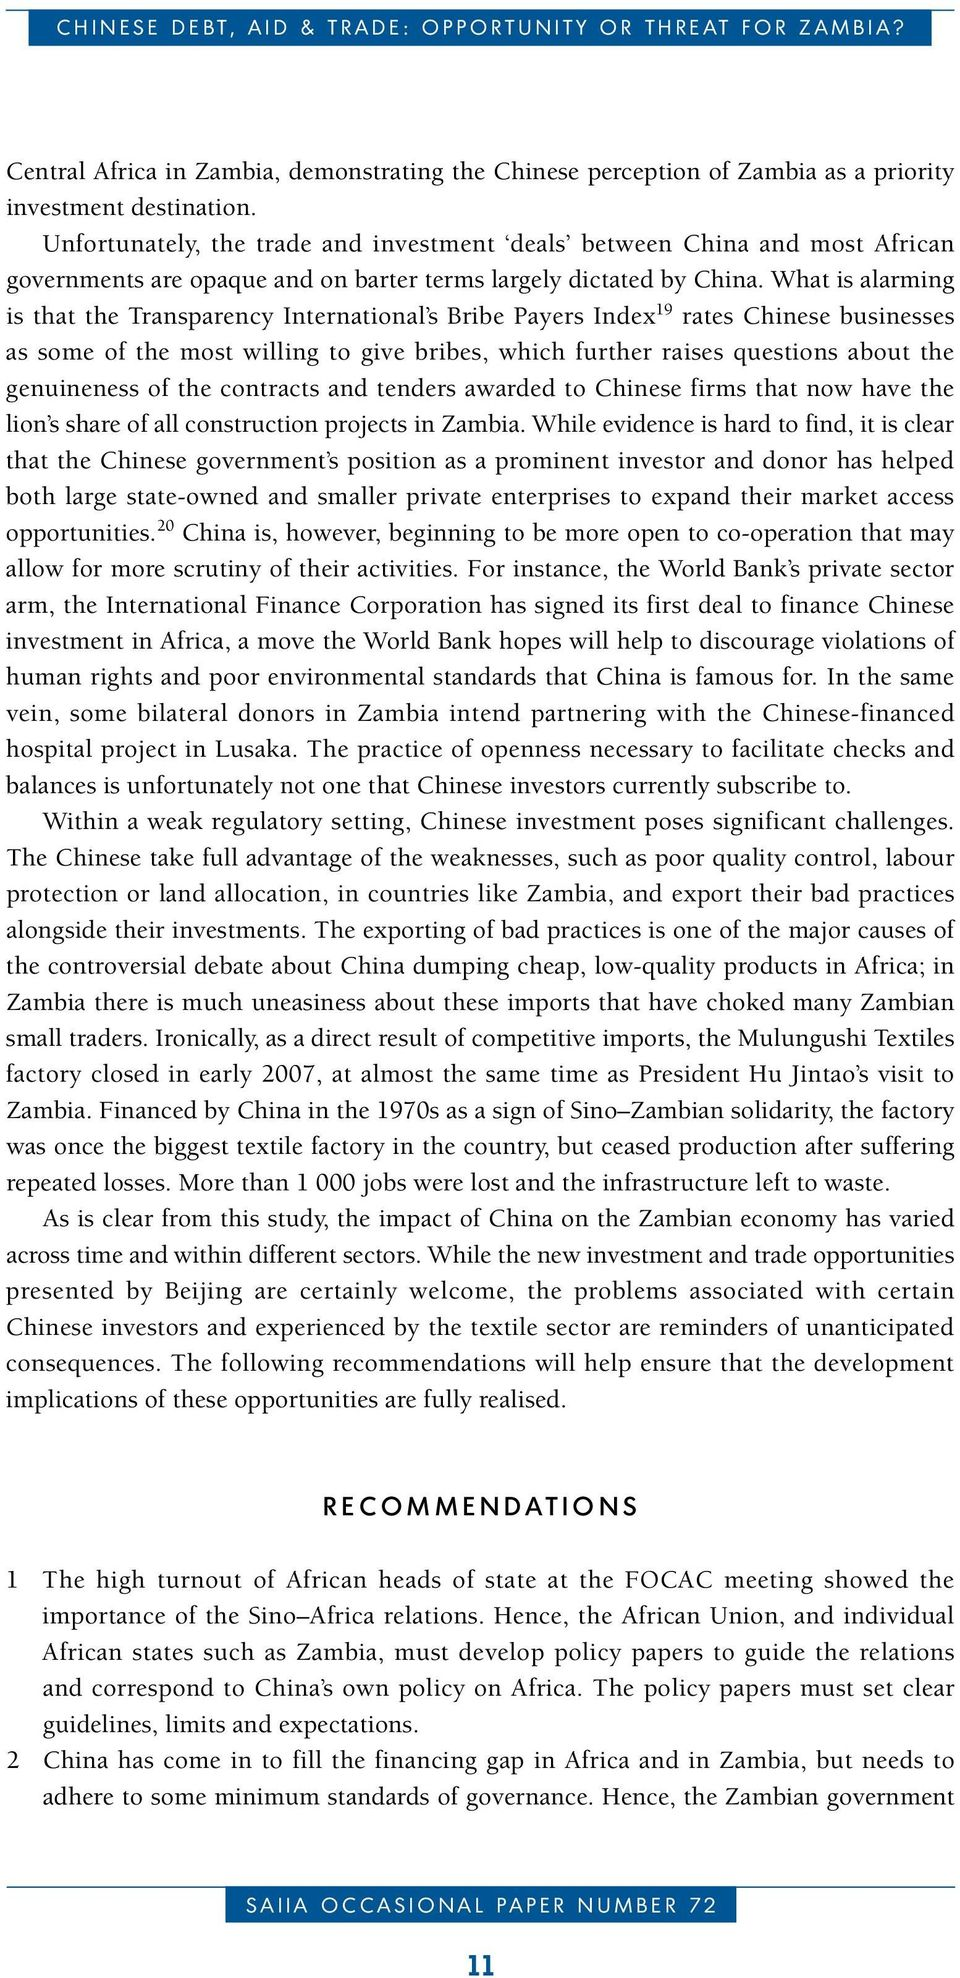 Unfortunately, the trade and investment deals between China and most African governments are opaque and on barter terms largely dictated by China.